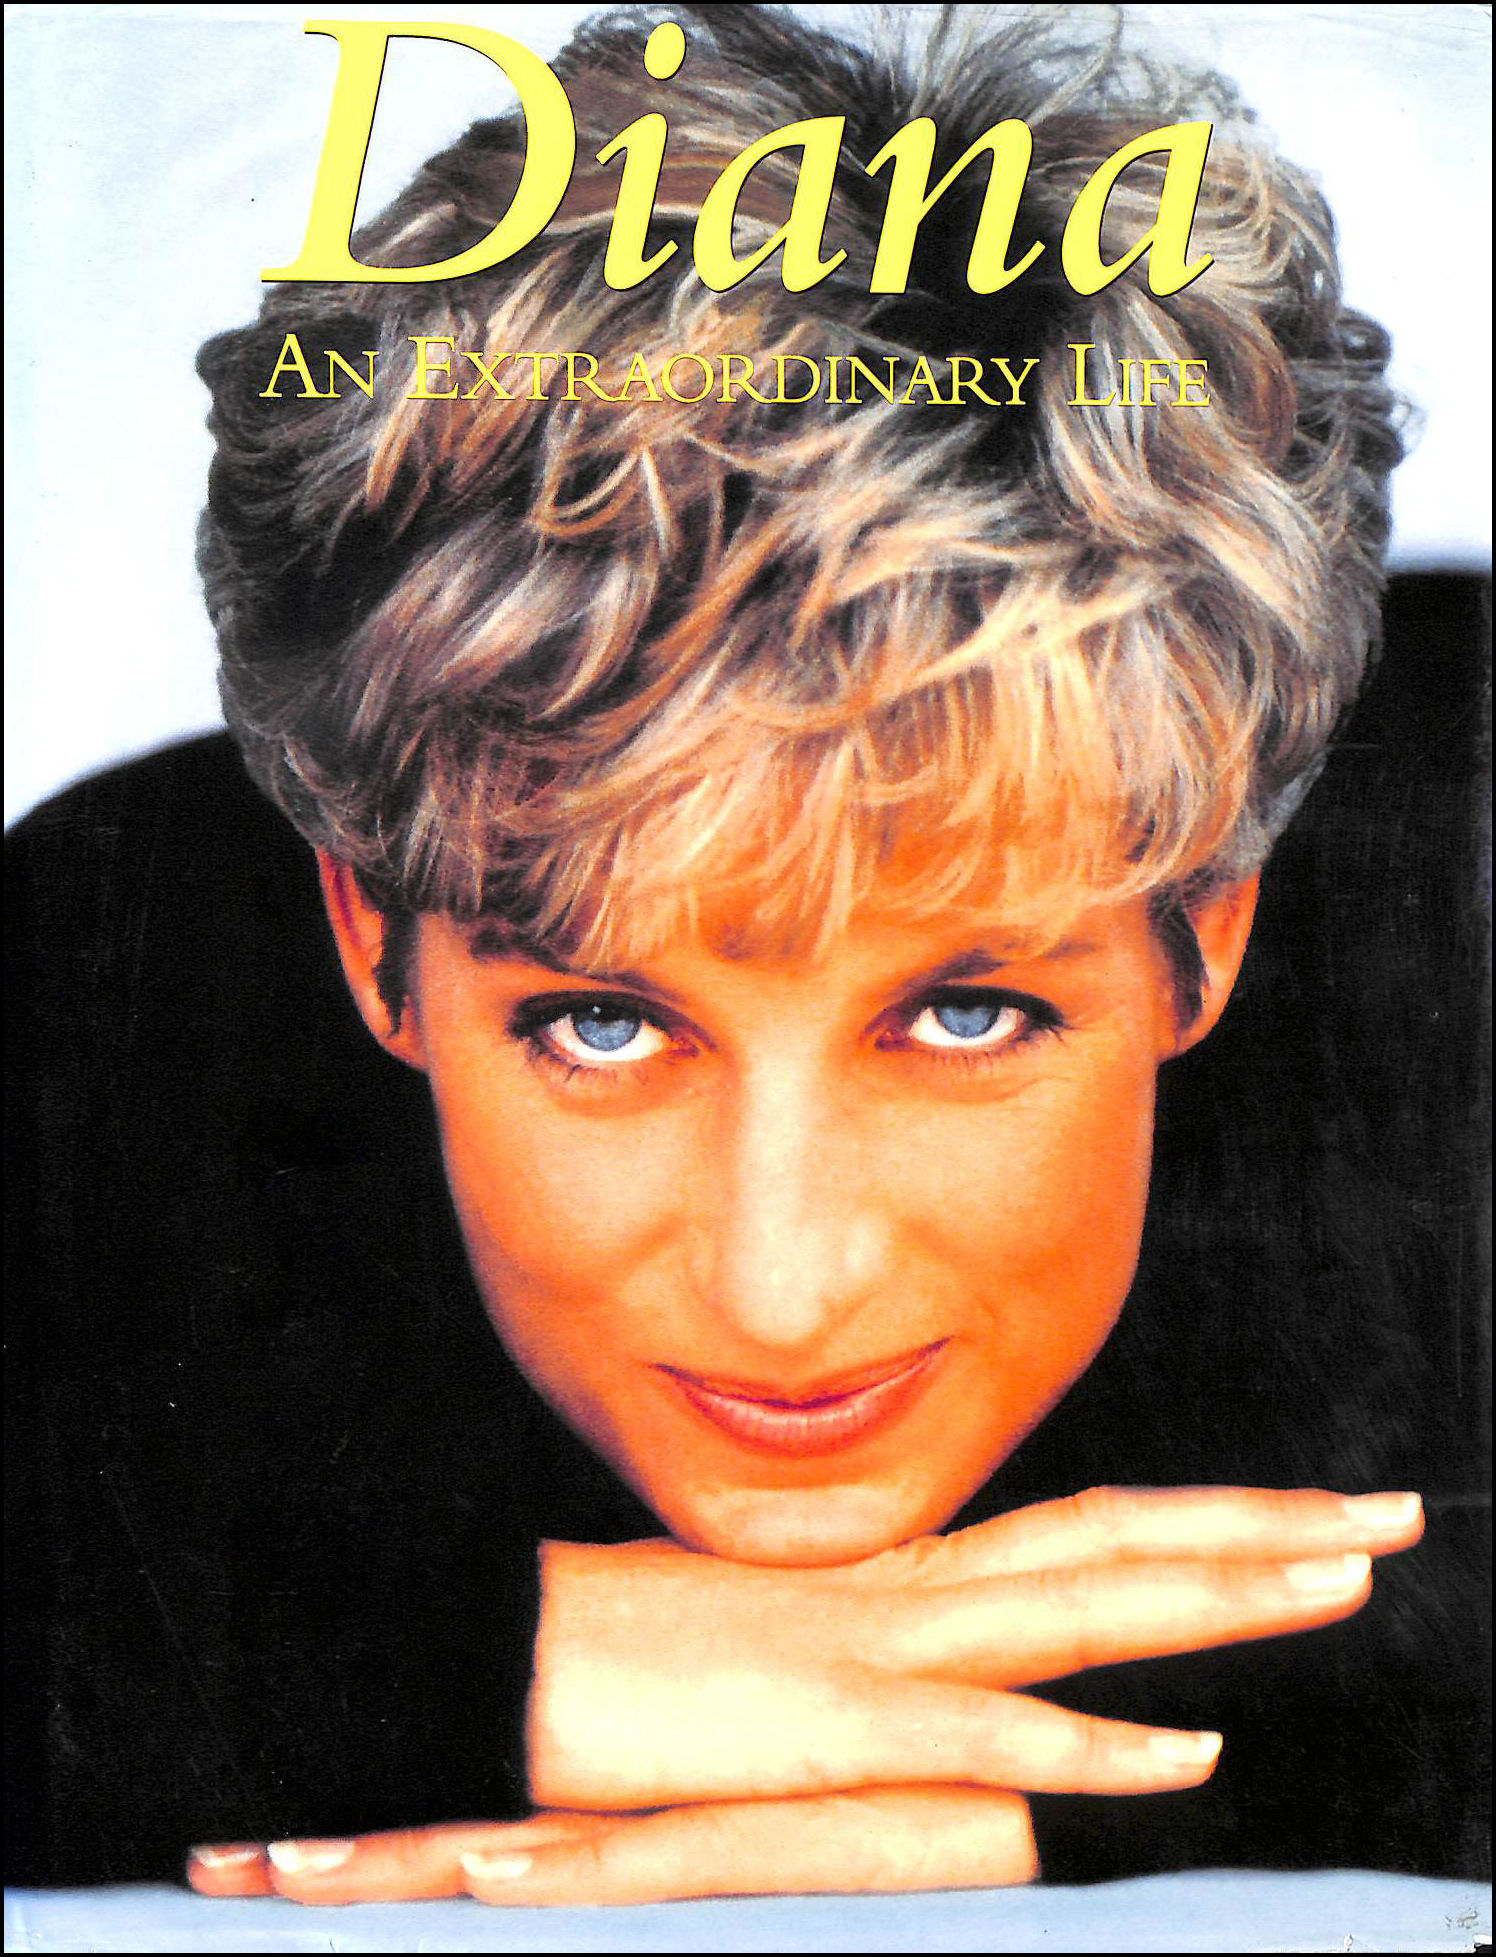 Diana, An Extraordinary Life, Ted Smart